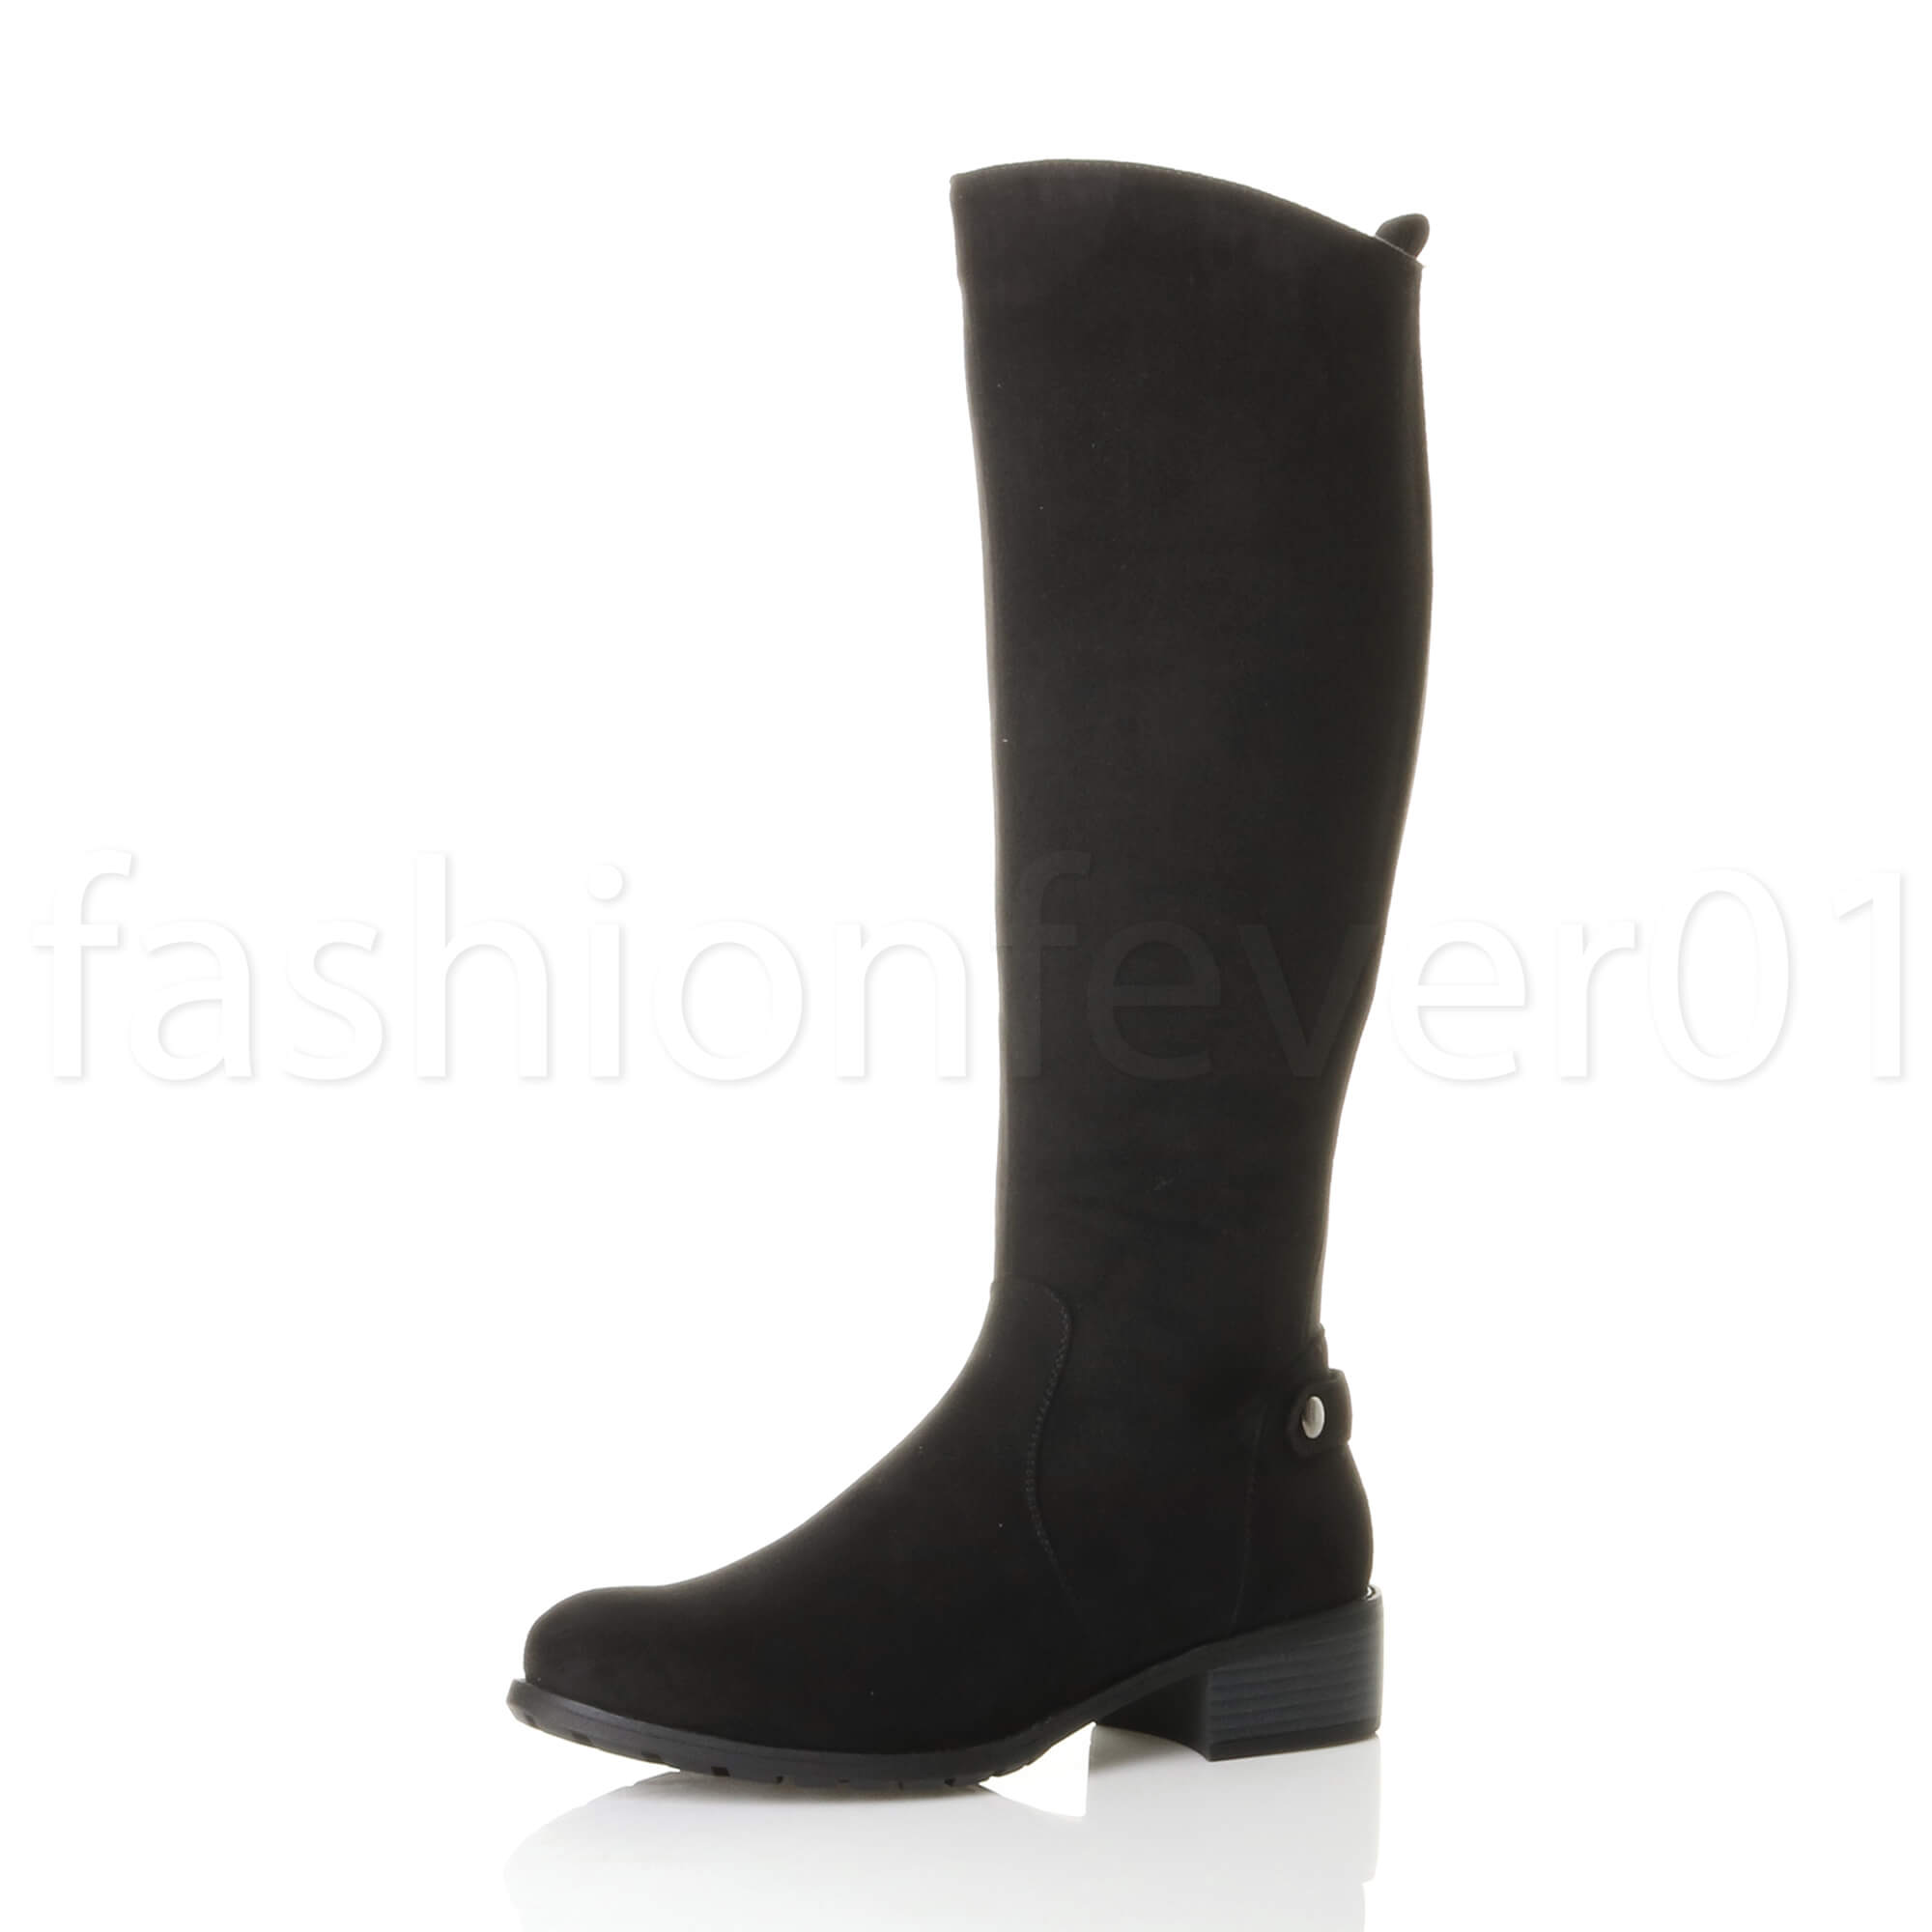 a9726c2564d5df WOMENS LADIES LOW MID HEEL GUSSET STRETCH ZIP CALF RIDING BOOTS SIZE ...